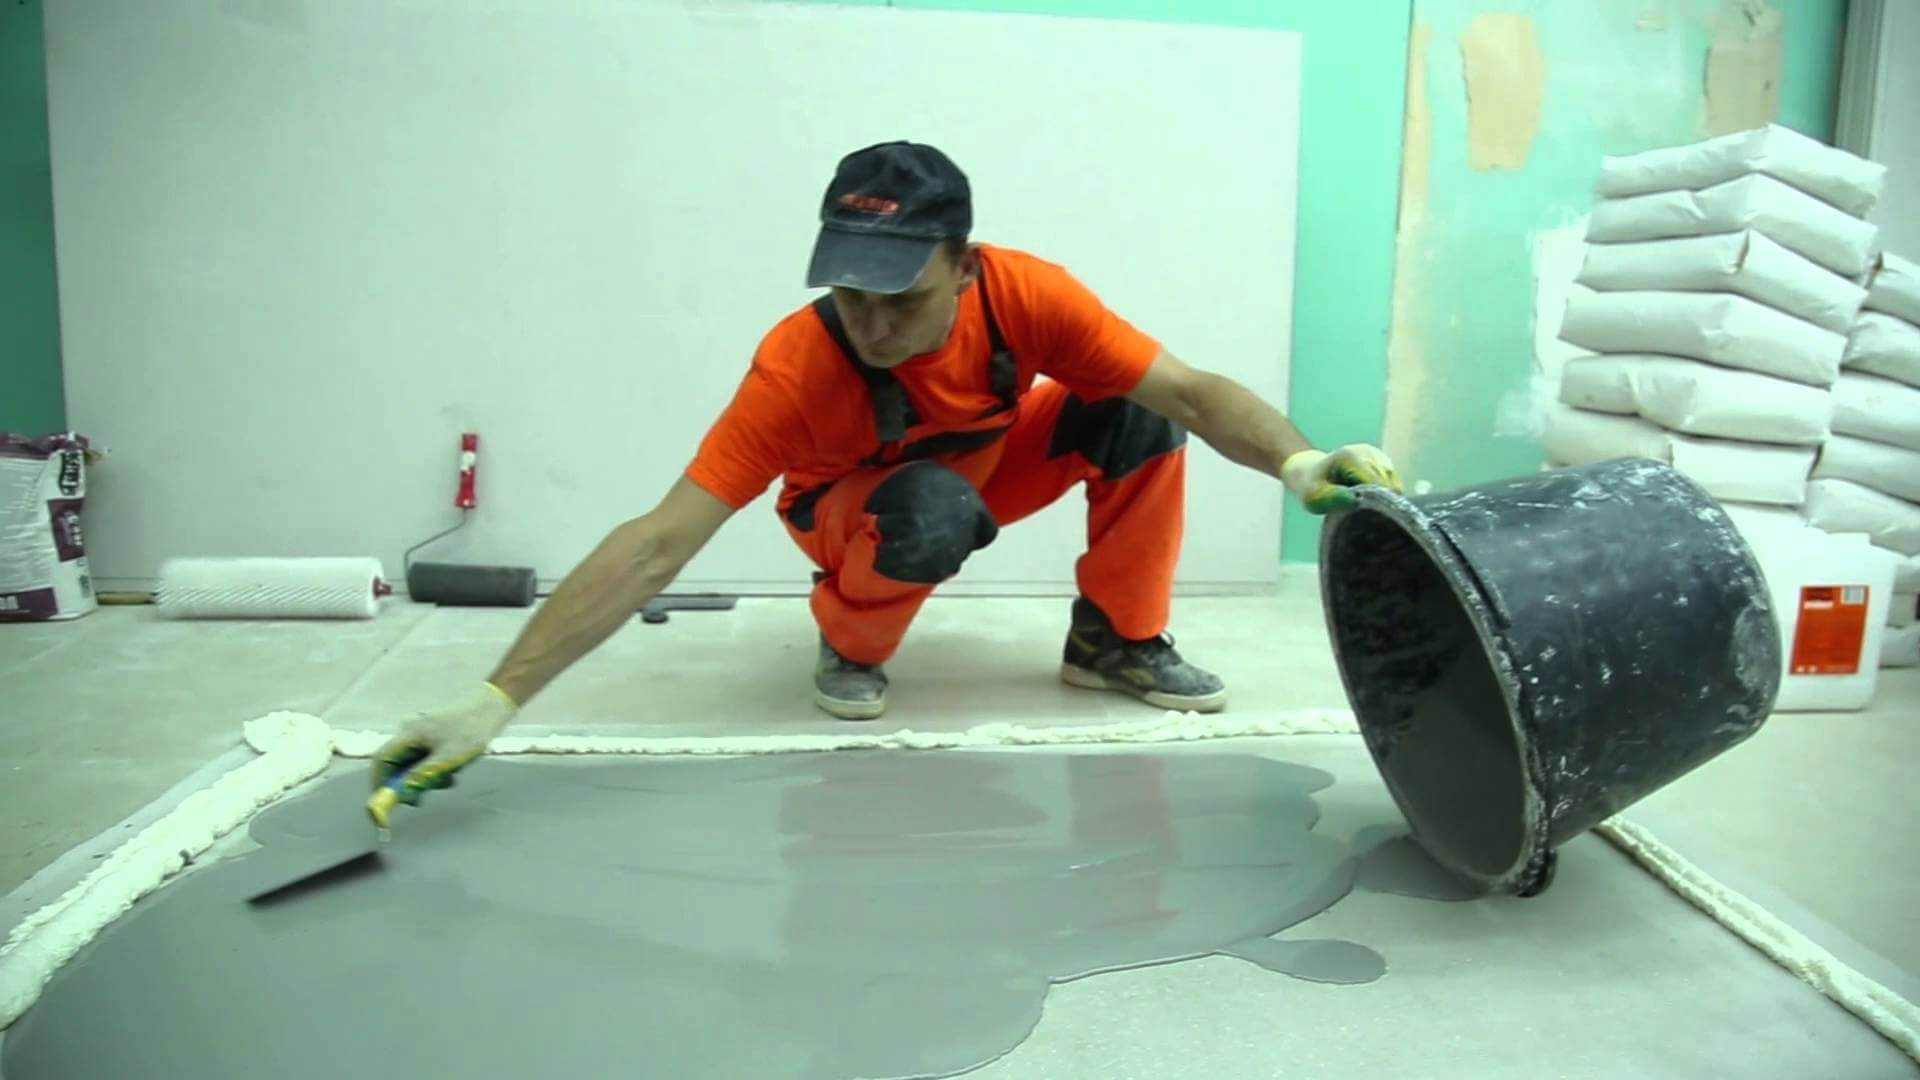 Zoning with the help of the liquid self-leveling mixture